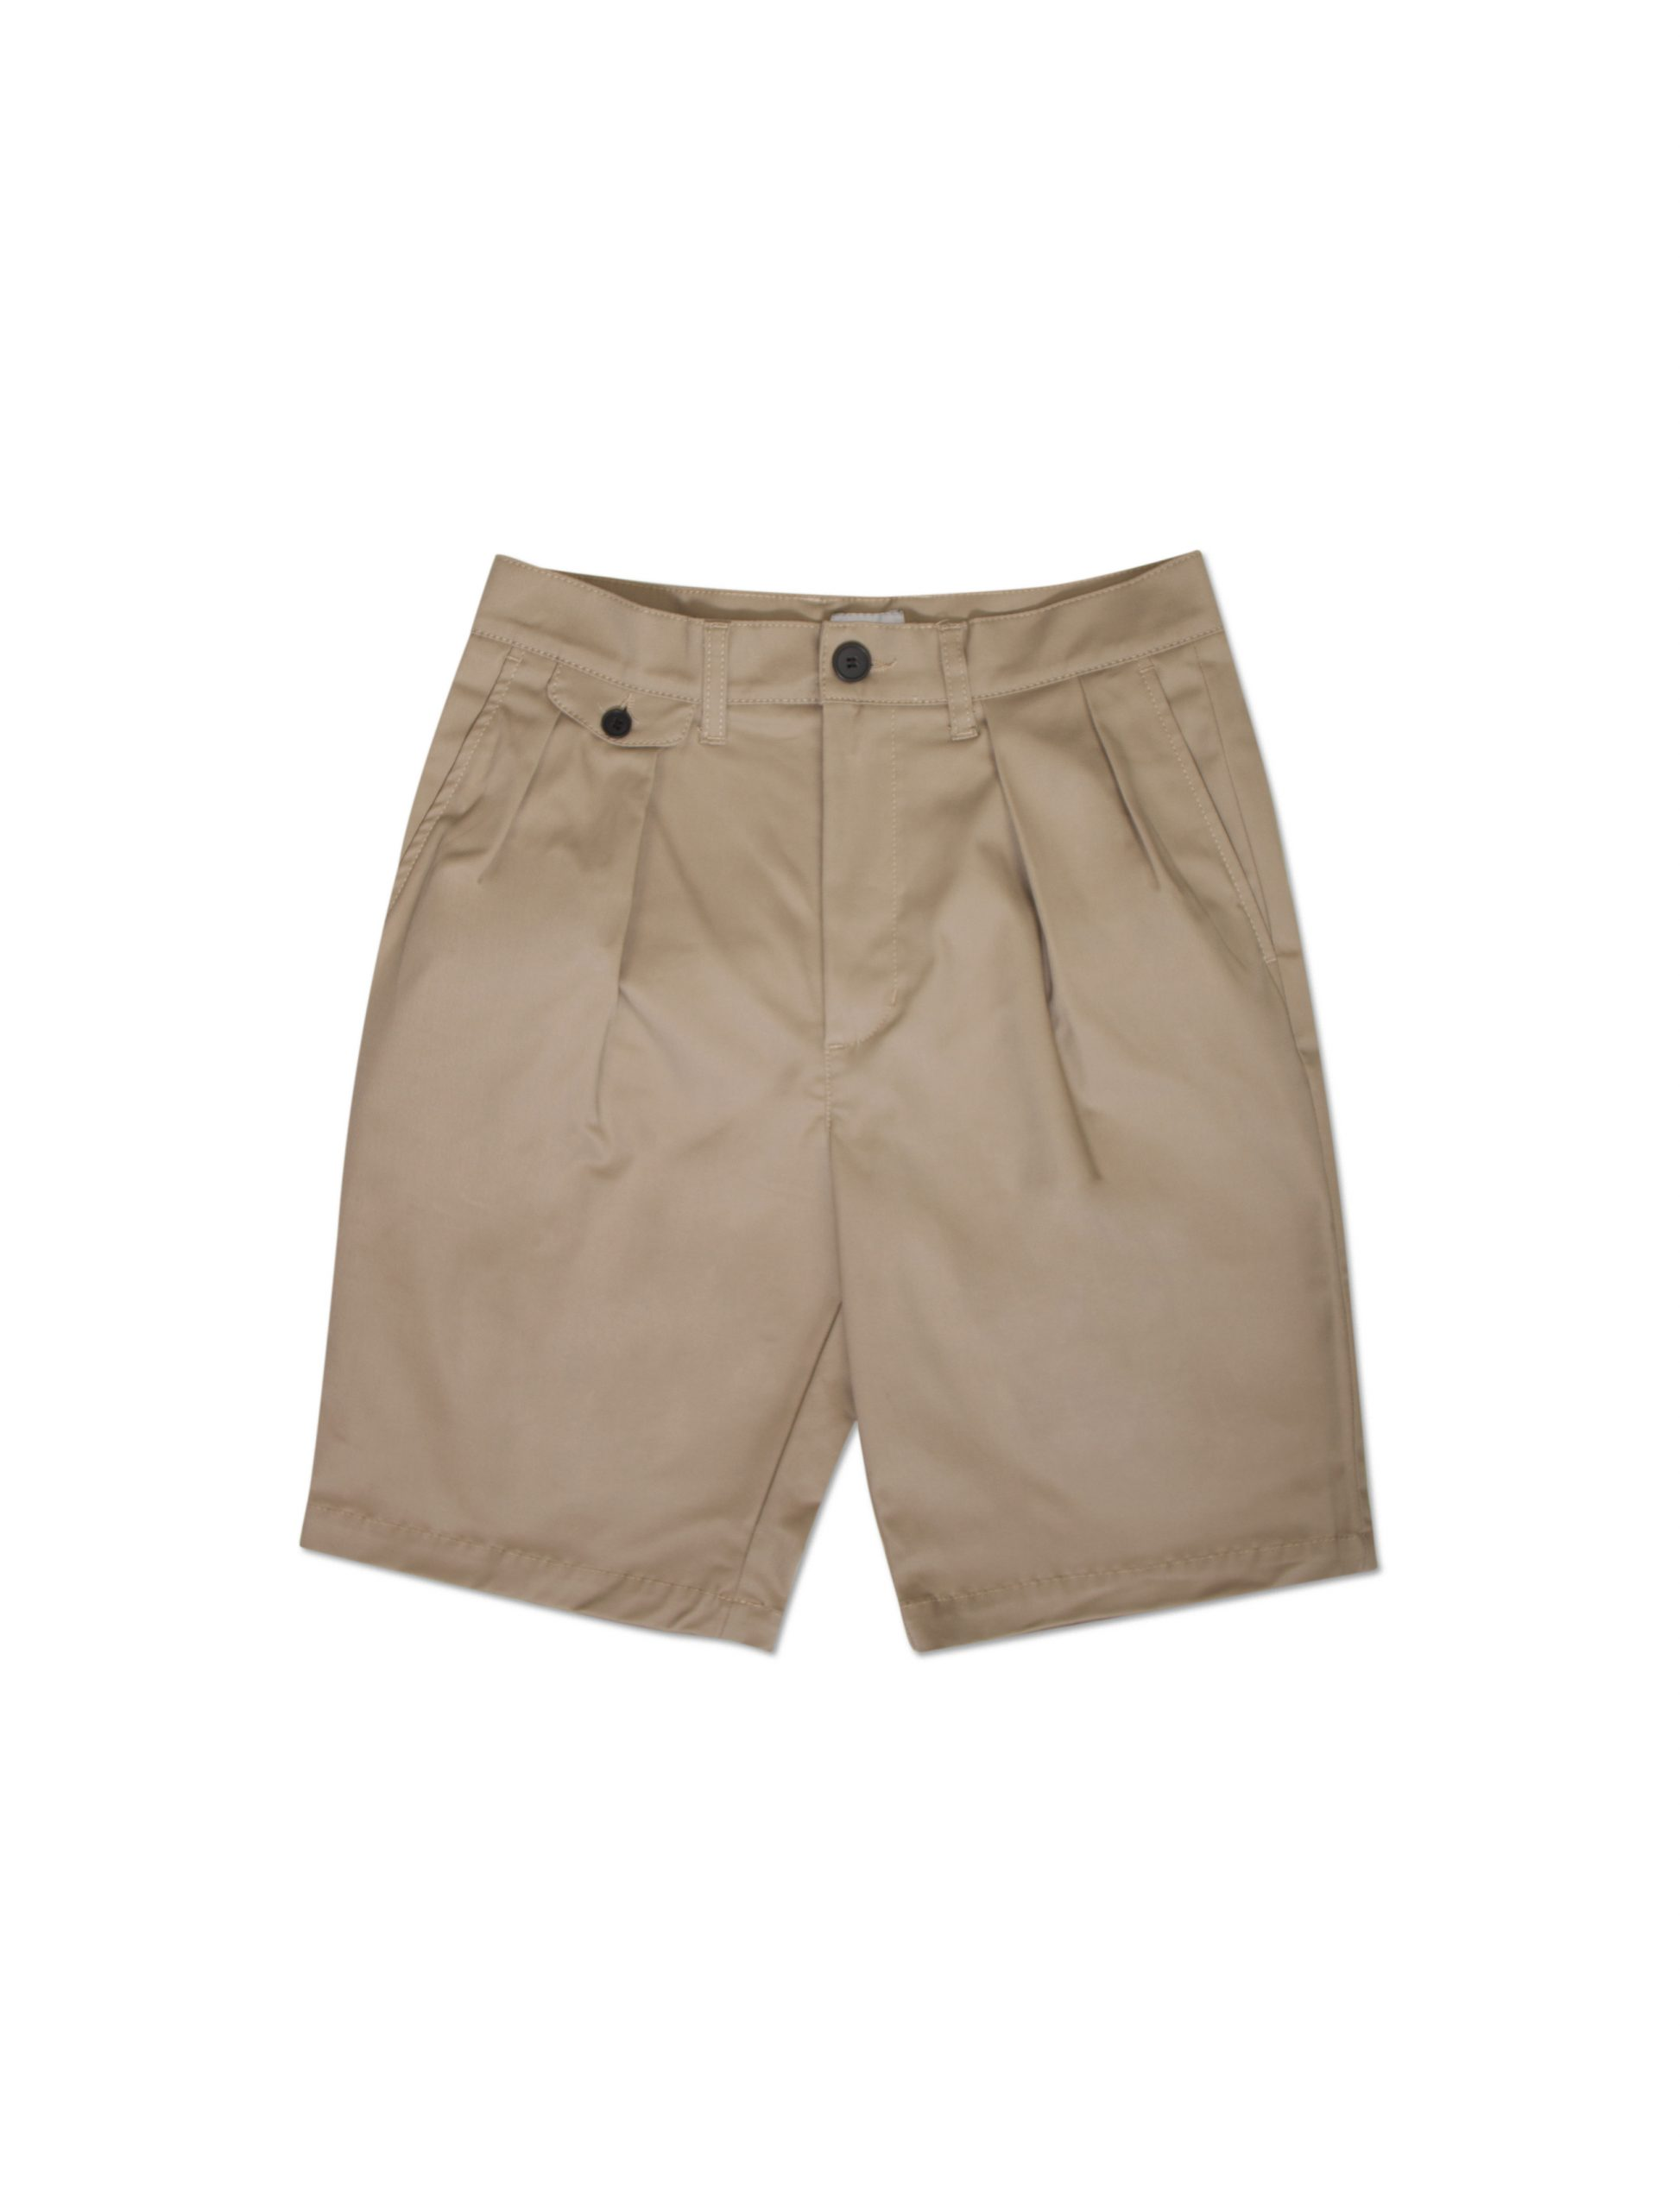 Paris Short Beige | Wooden Store